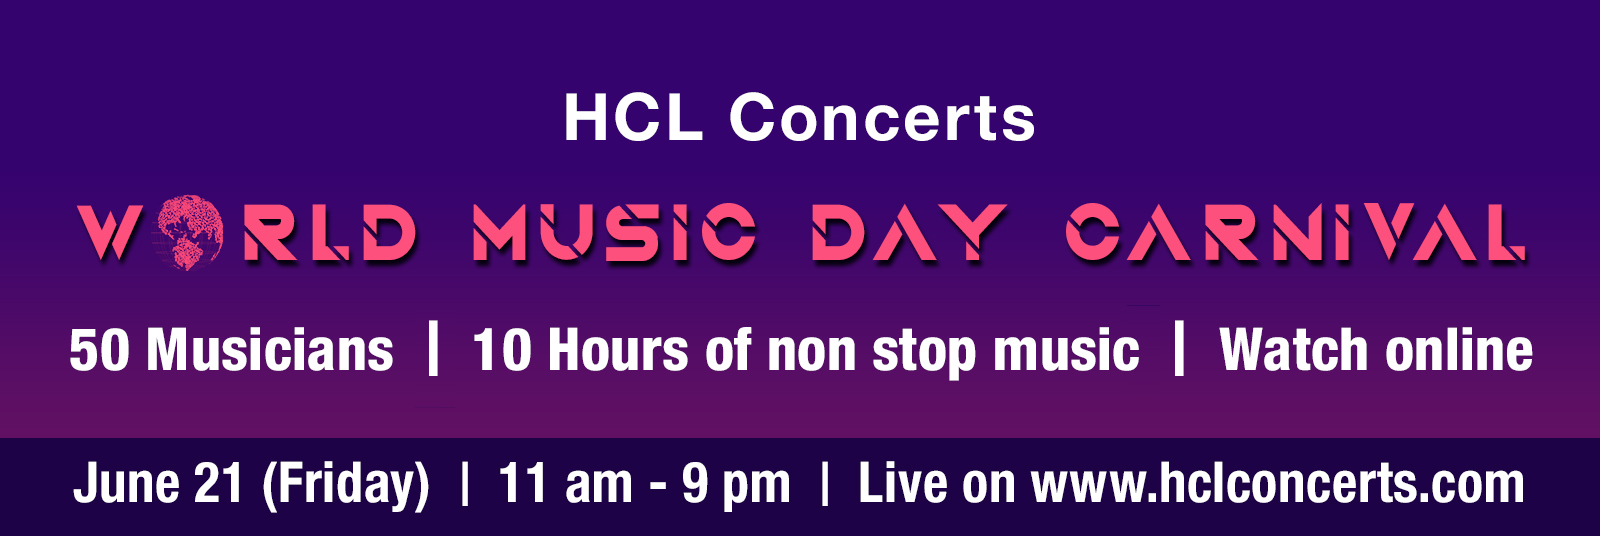 HCL Concerts World Music Day Carnival